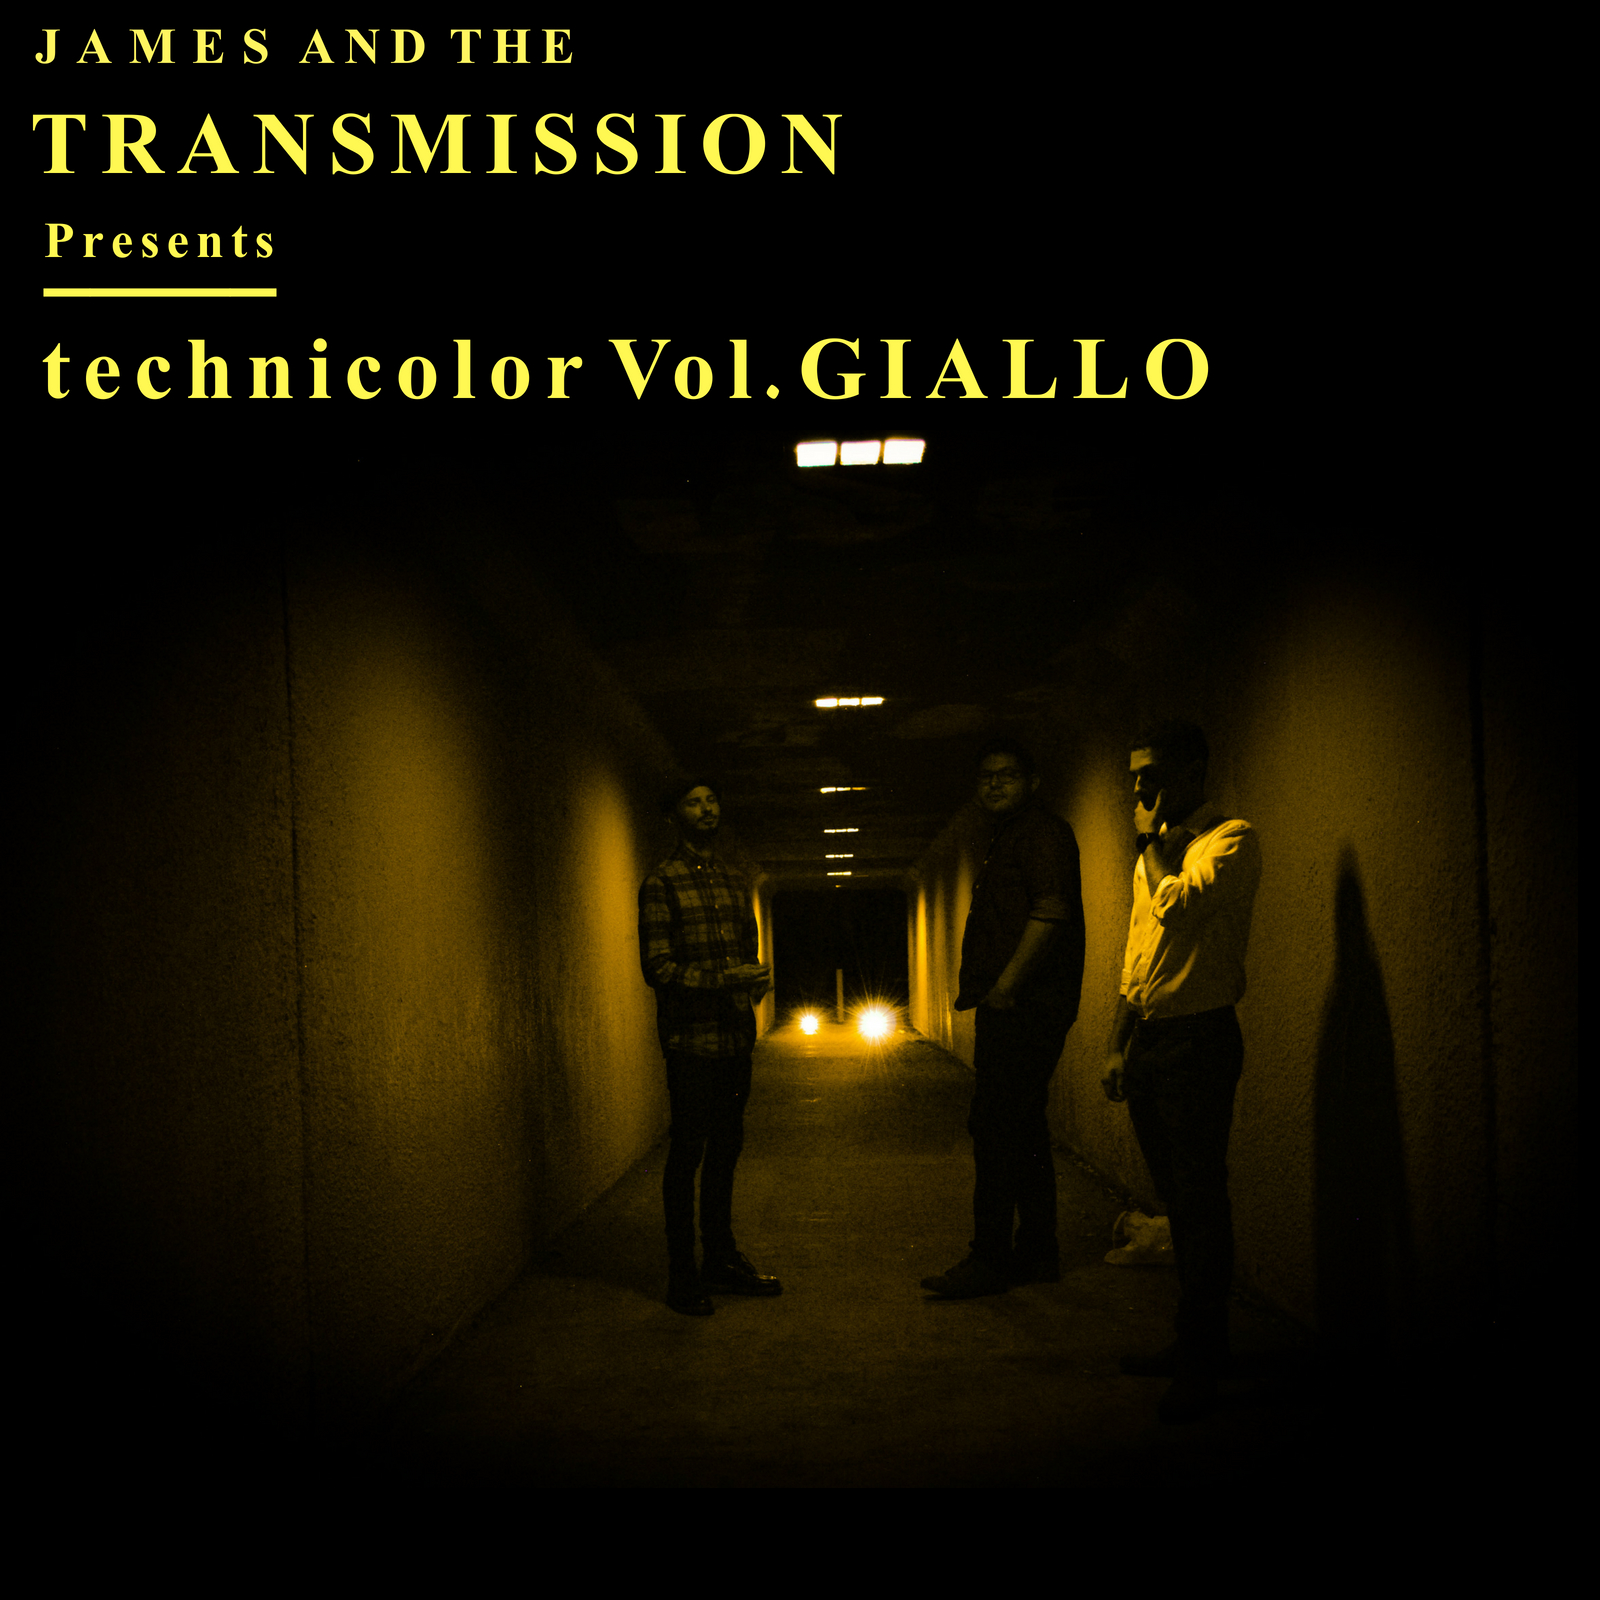 Technicolor, Vol. Giallo - Album Cover.jpg